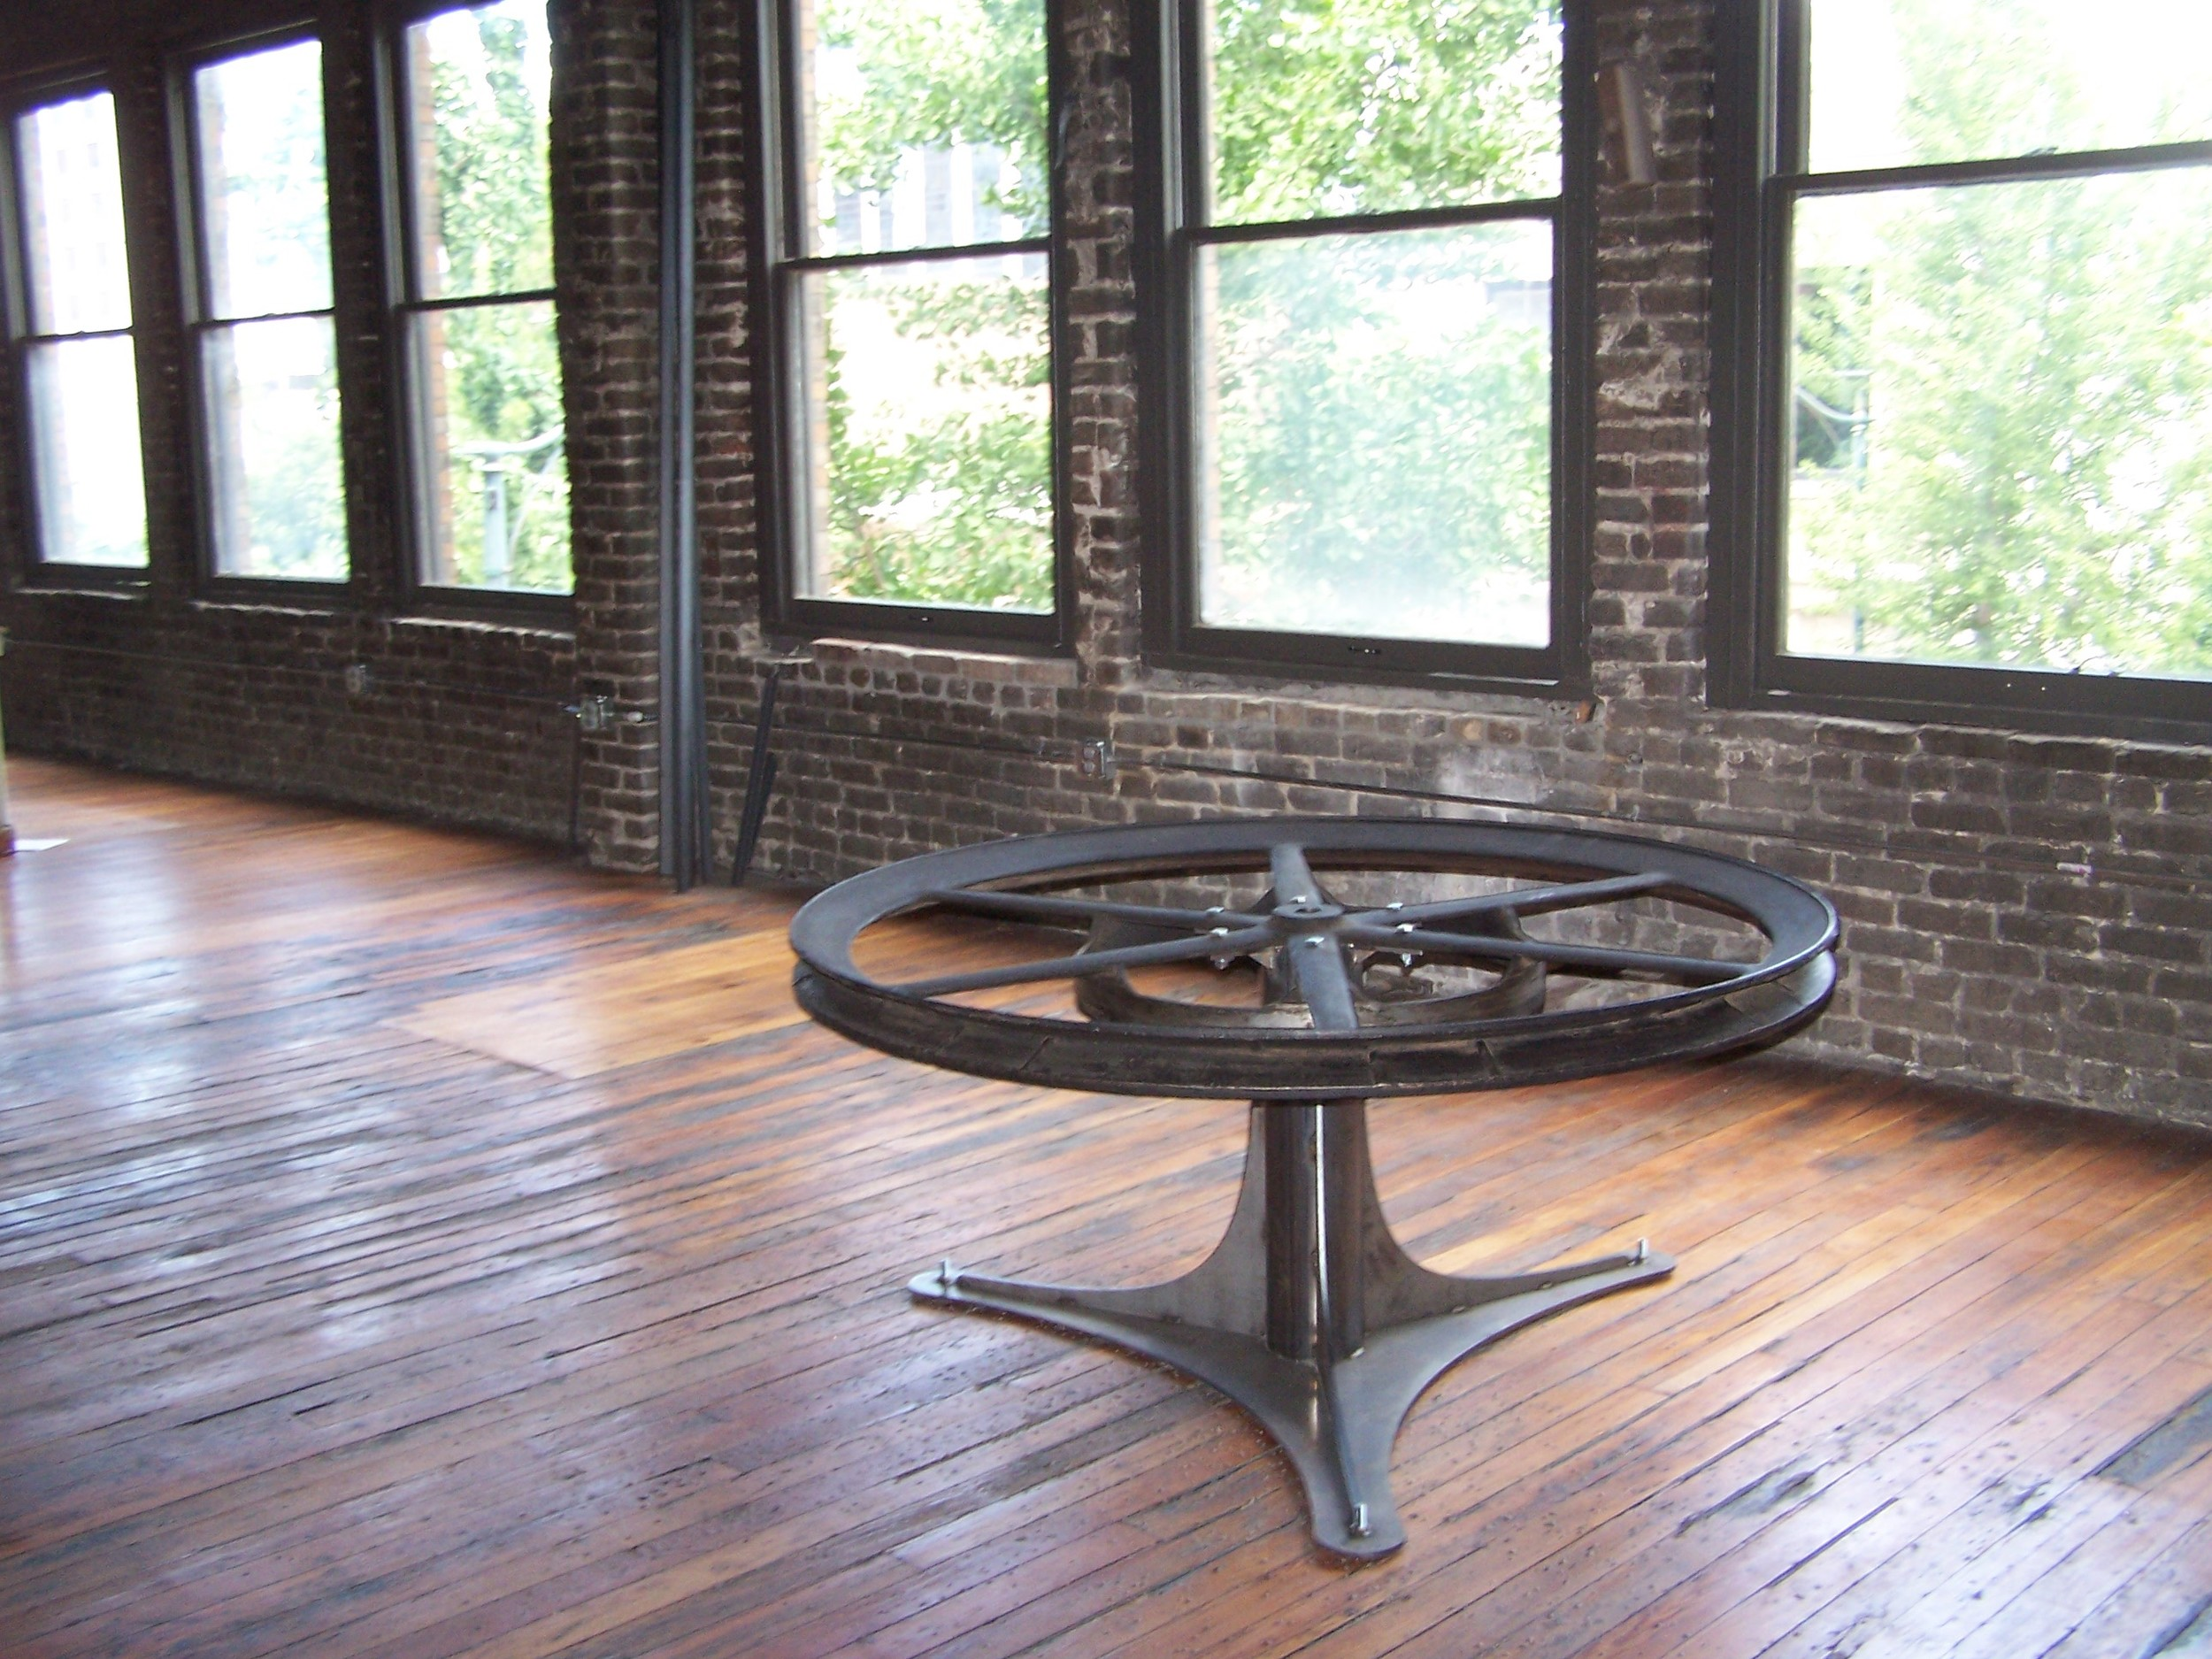 Table made out of elevator pulley wheel